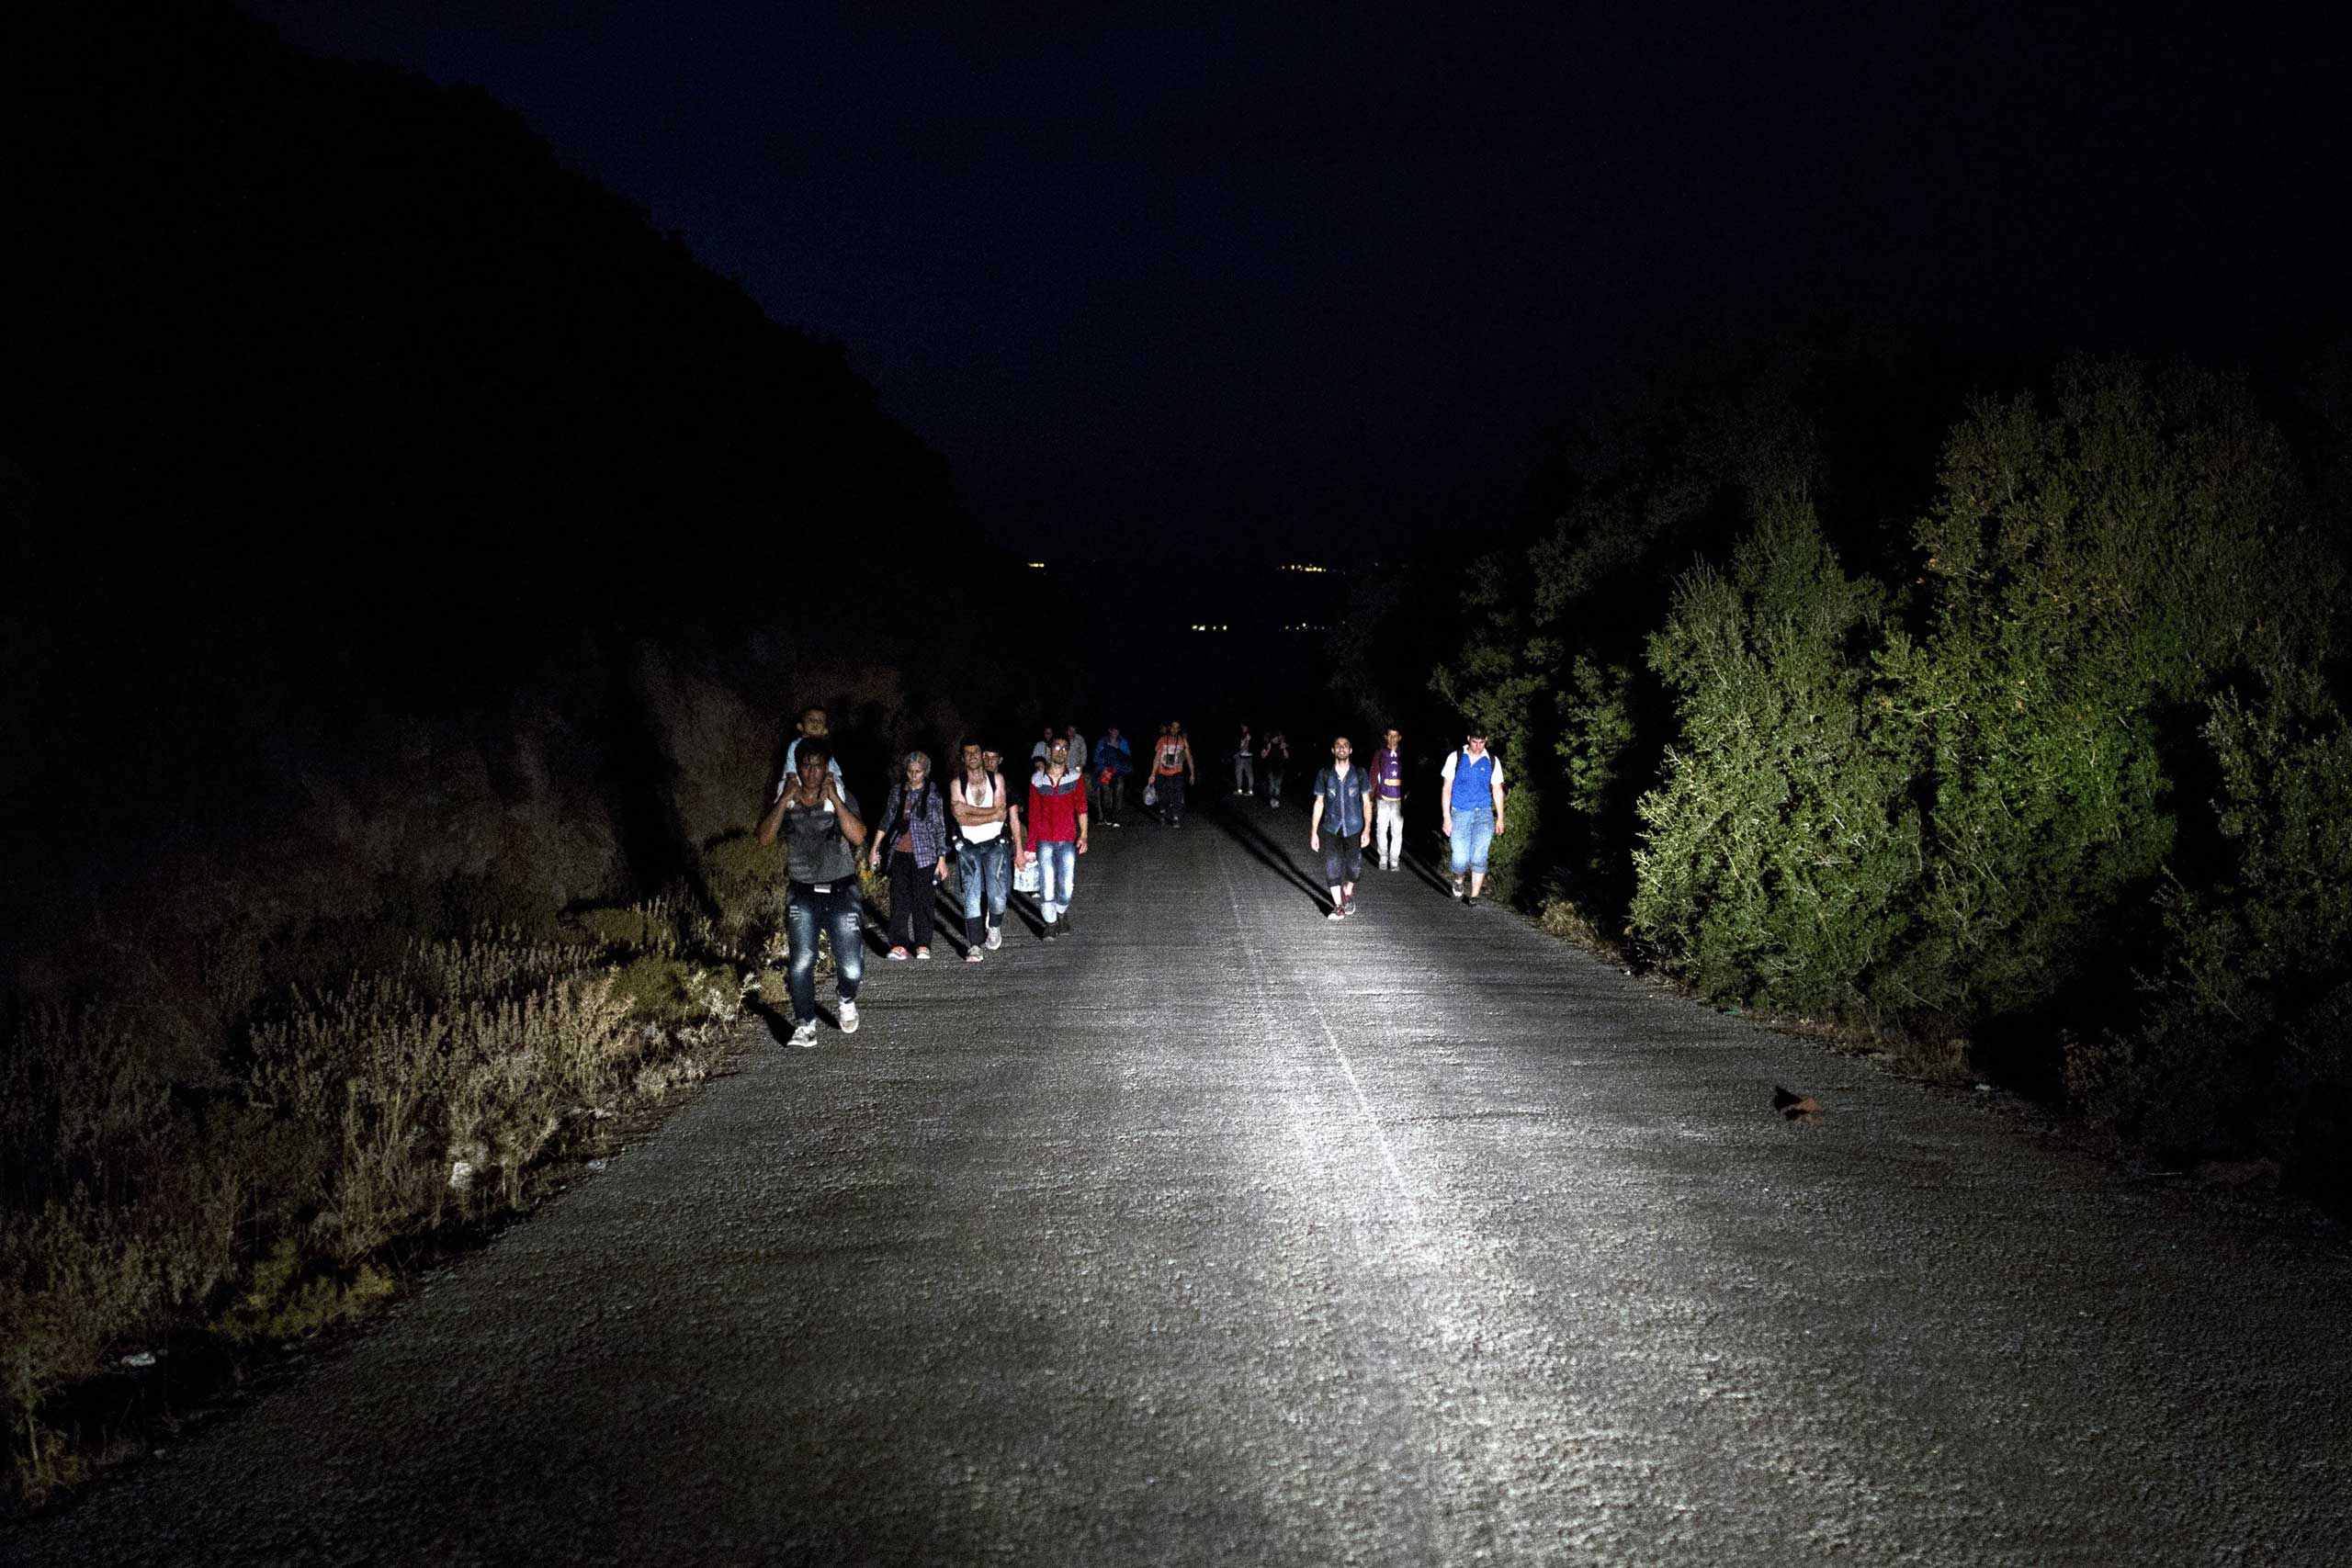 Migrants walk on the street towards Mytilene on the Greek island of Lesbos, Sept. 8, 2015.